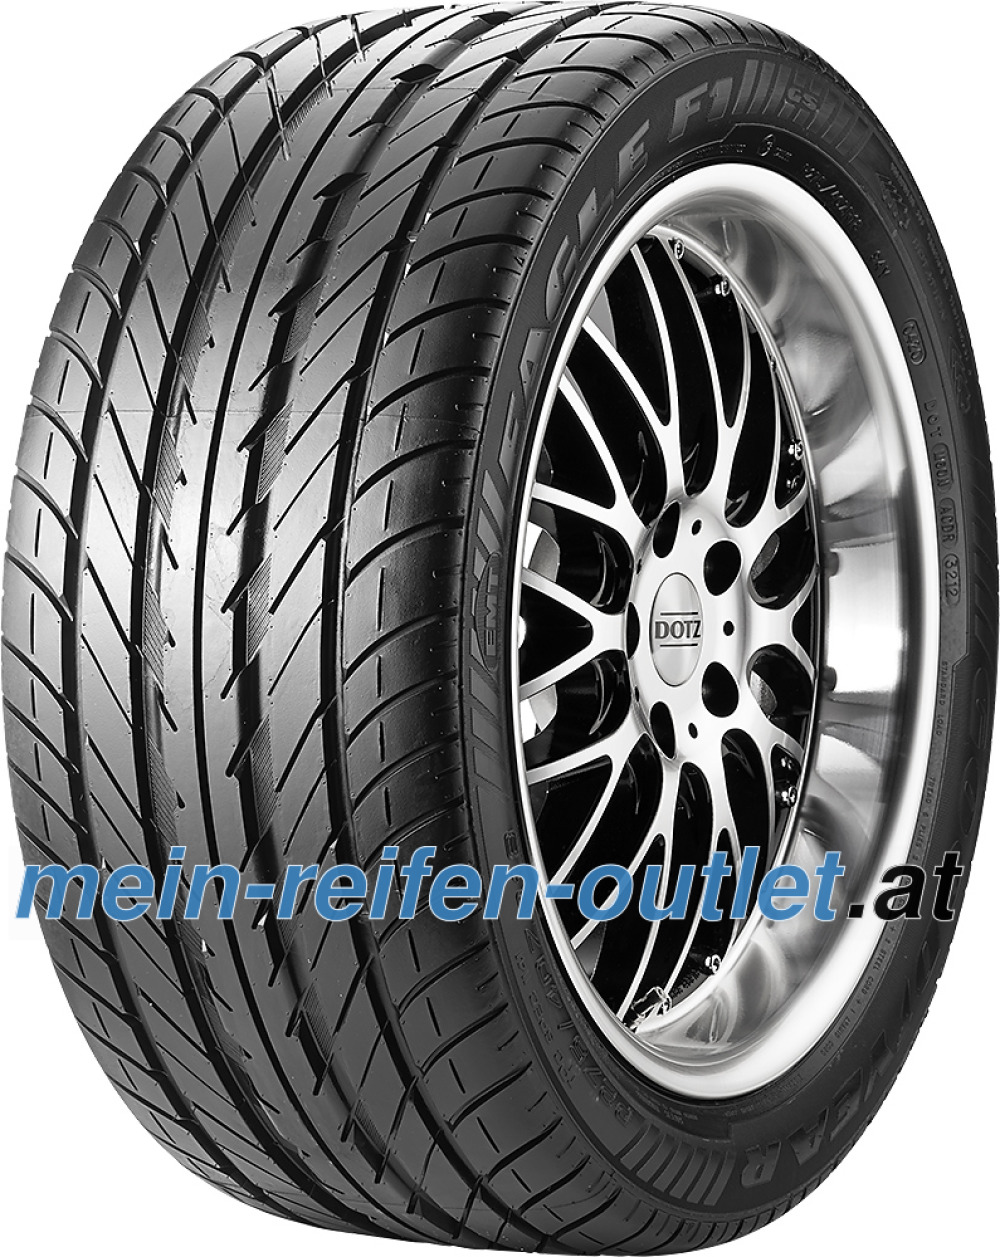 Goodyear Eagle F1 GS EMT ( P275/40 ZR18 94Y runflat )